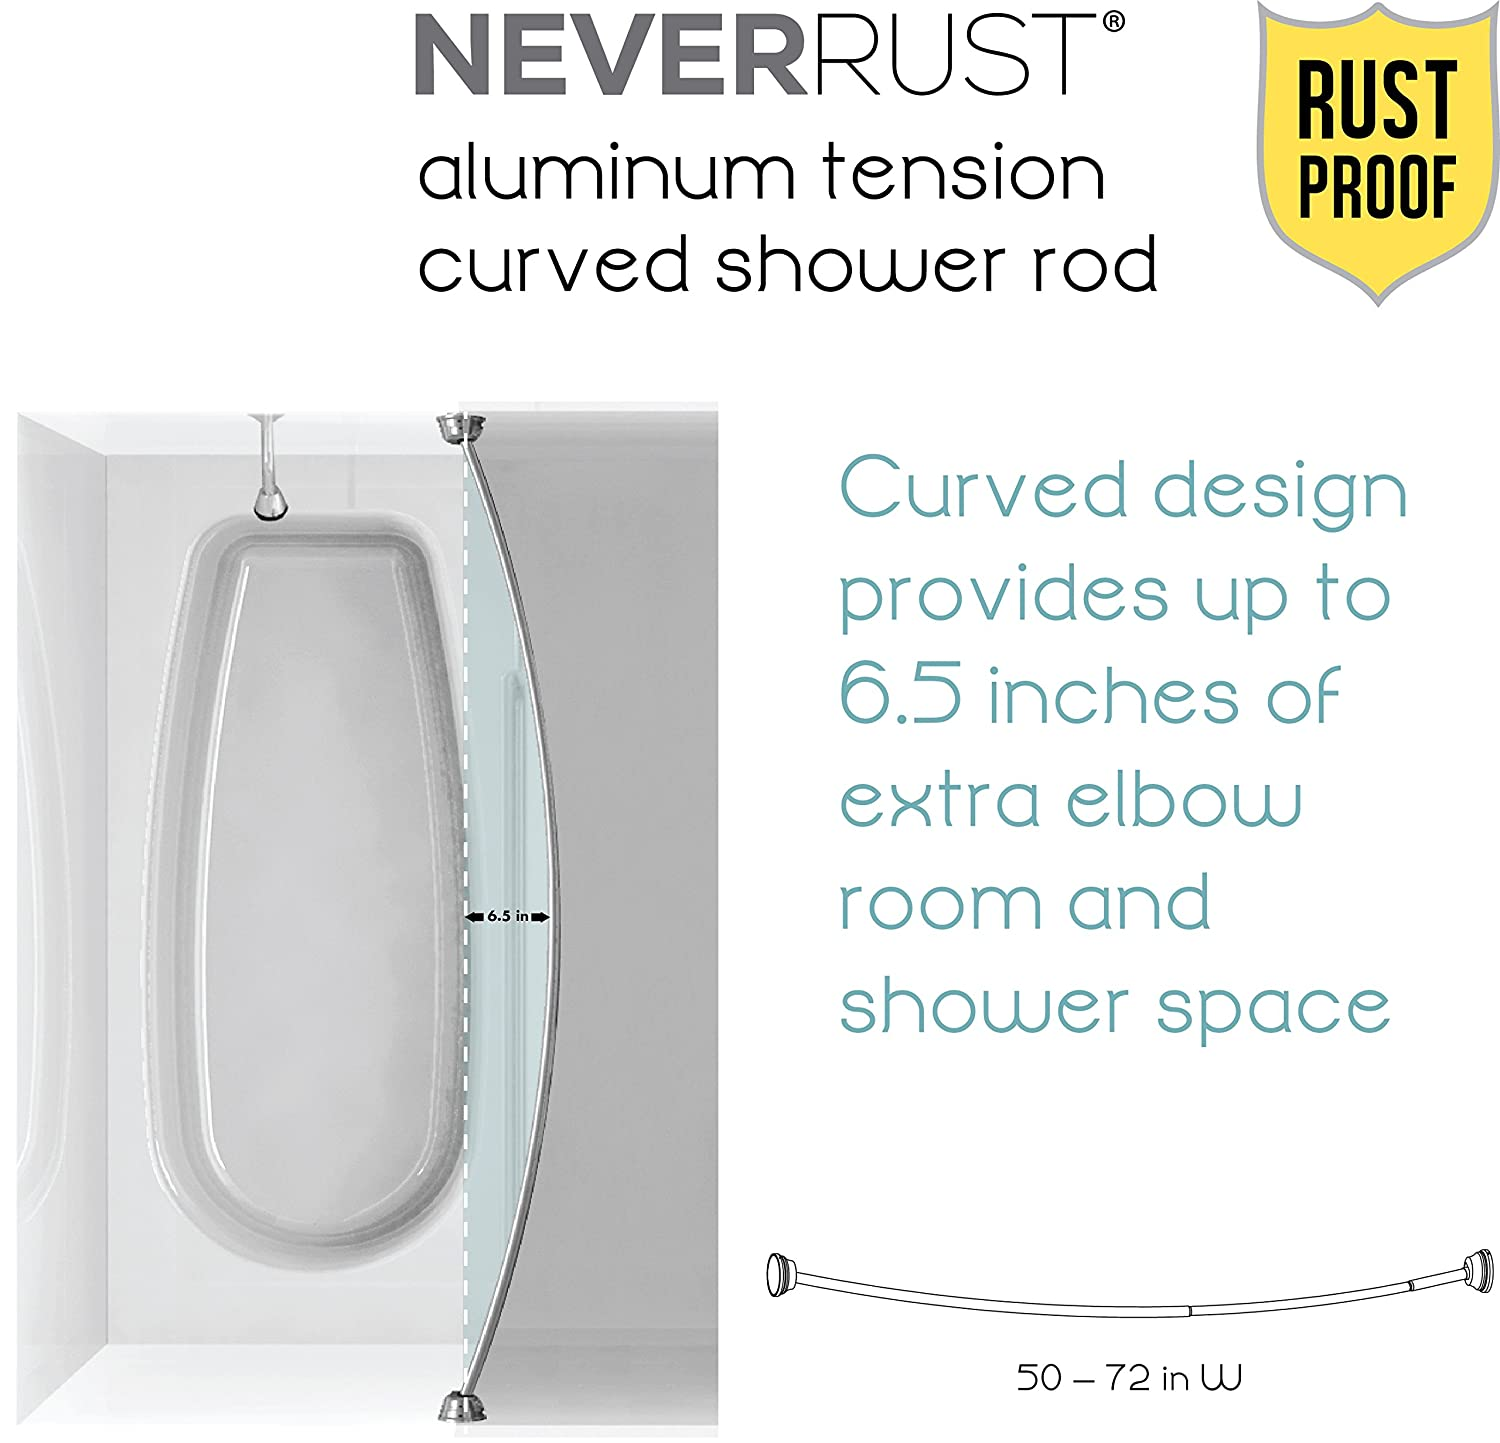 amazoncom zenna home 35633ssp neverrust aluminum tension curved shower curtain rod 50 to 72inch chrome home u0026 kitchen